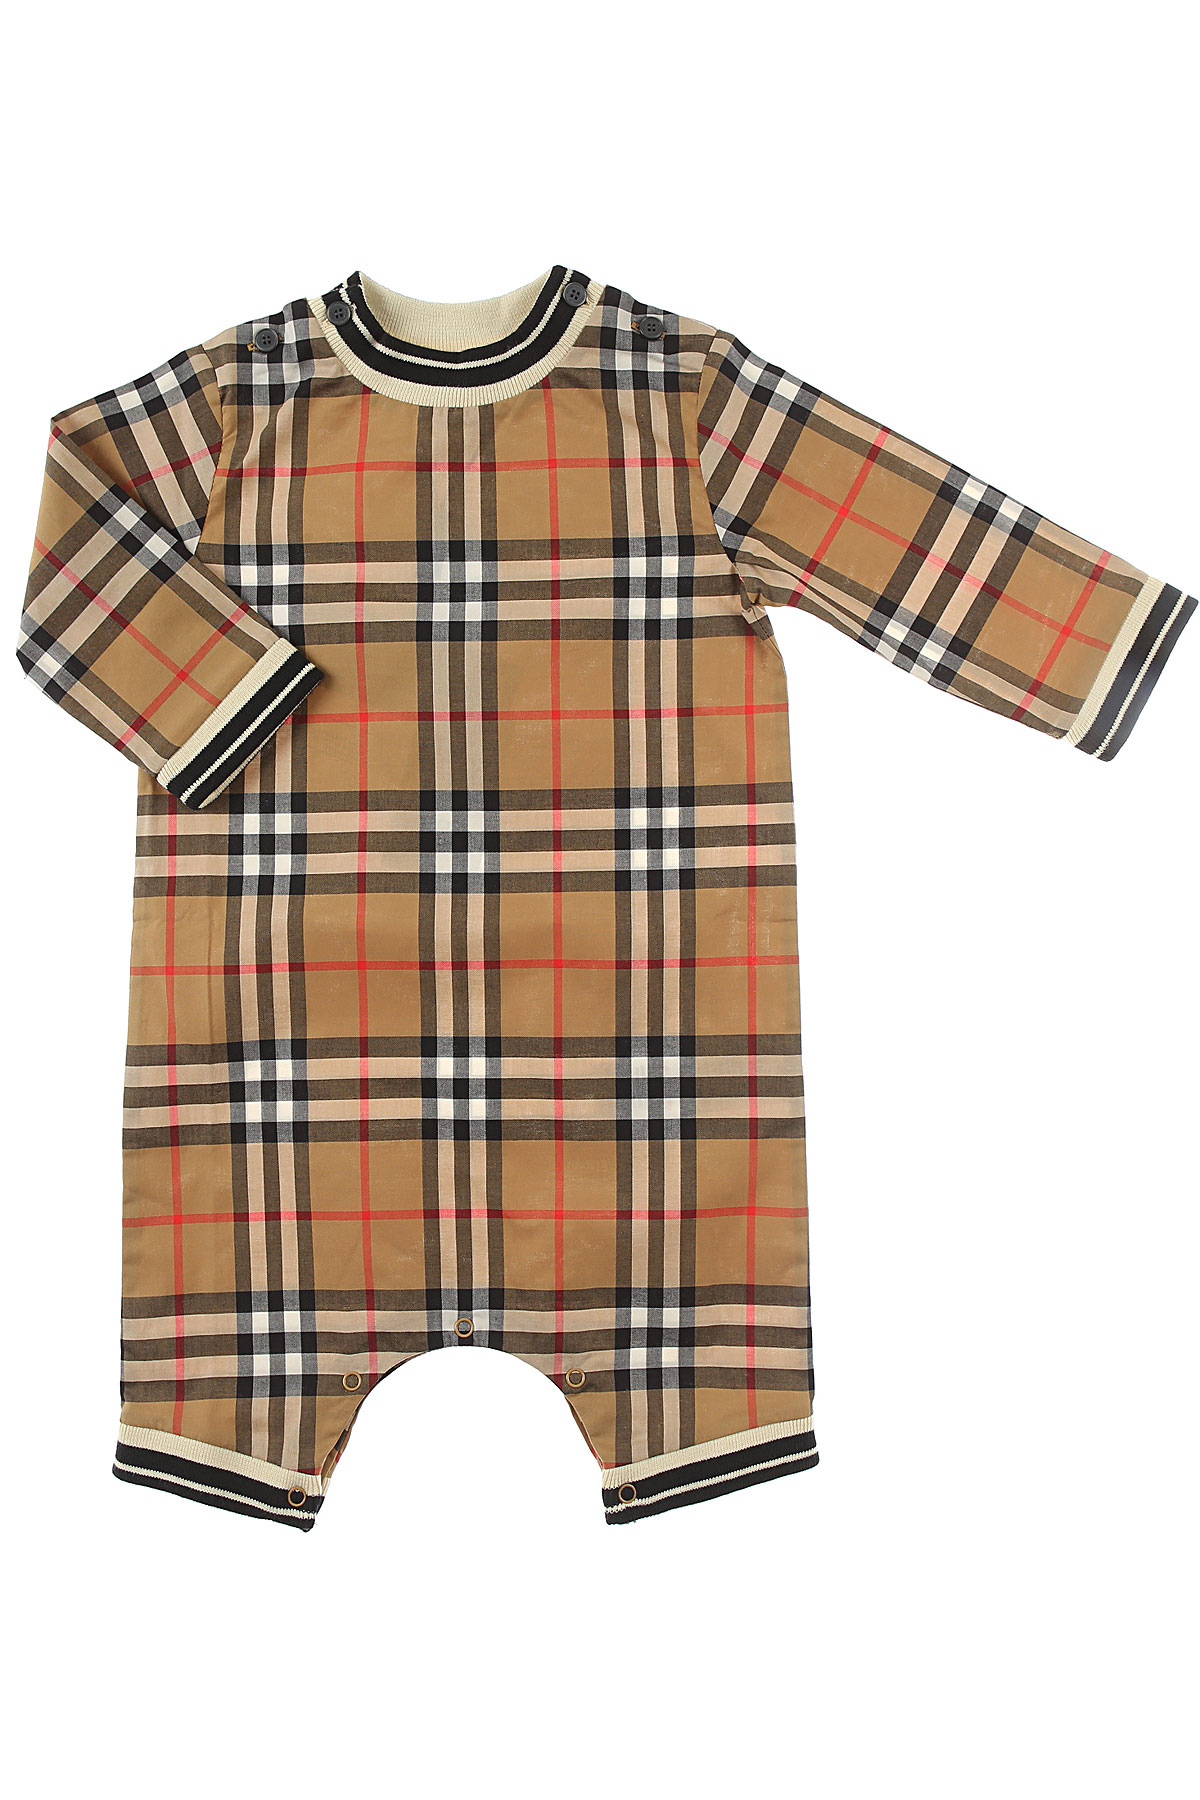 Image of Burberry Baby Bodysuits & Onesies for Girls, Brown, Cotton, 2017, 3M 6M 9M